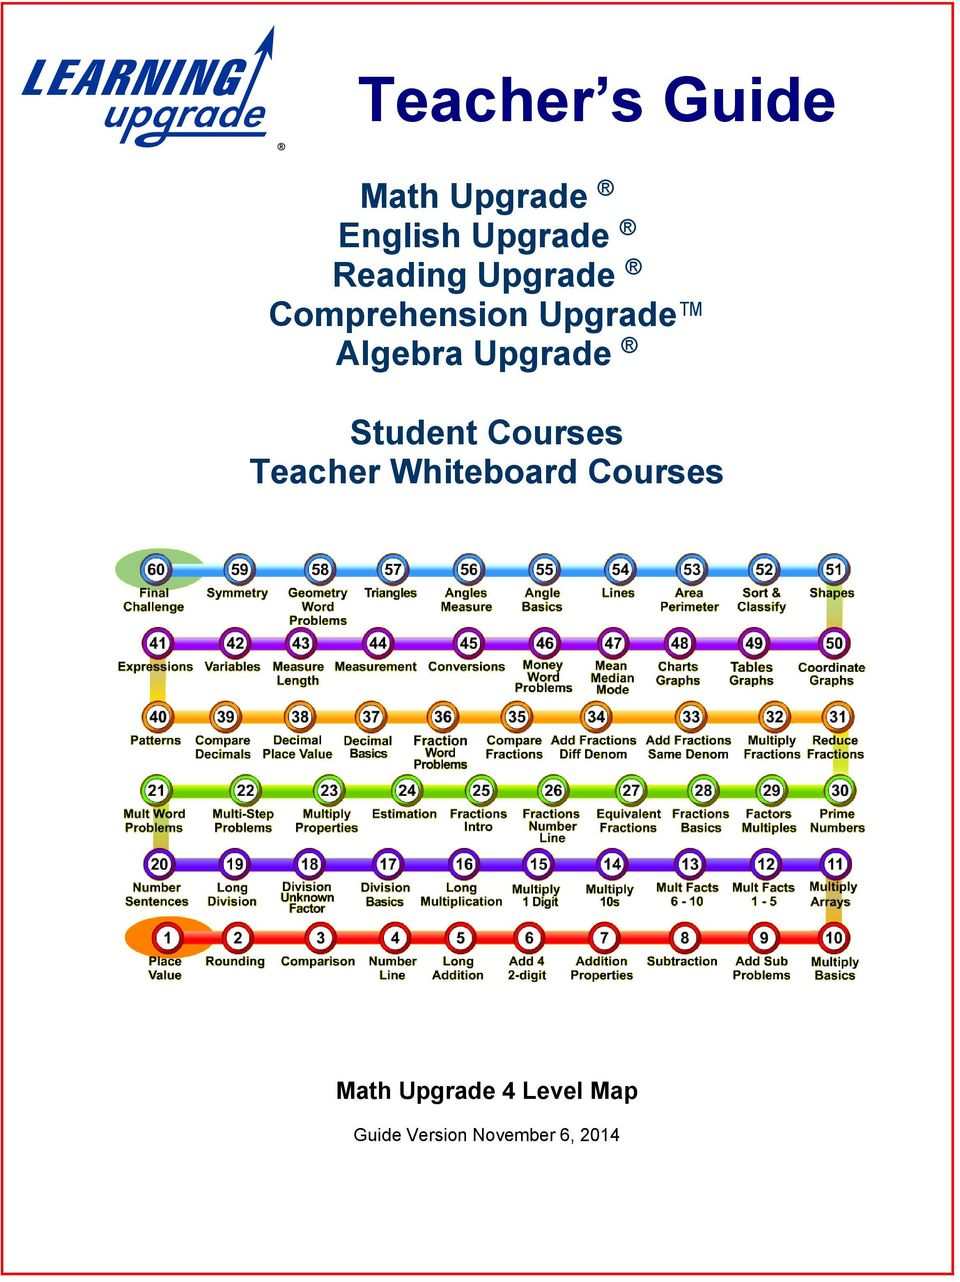 Upgrade Student Courses Teacher Whiteboard